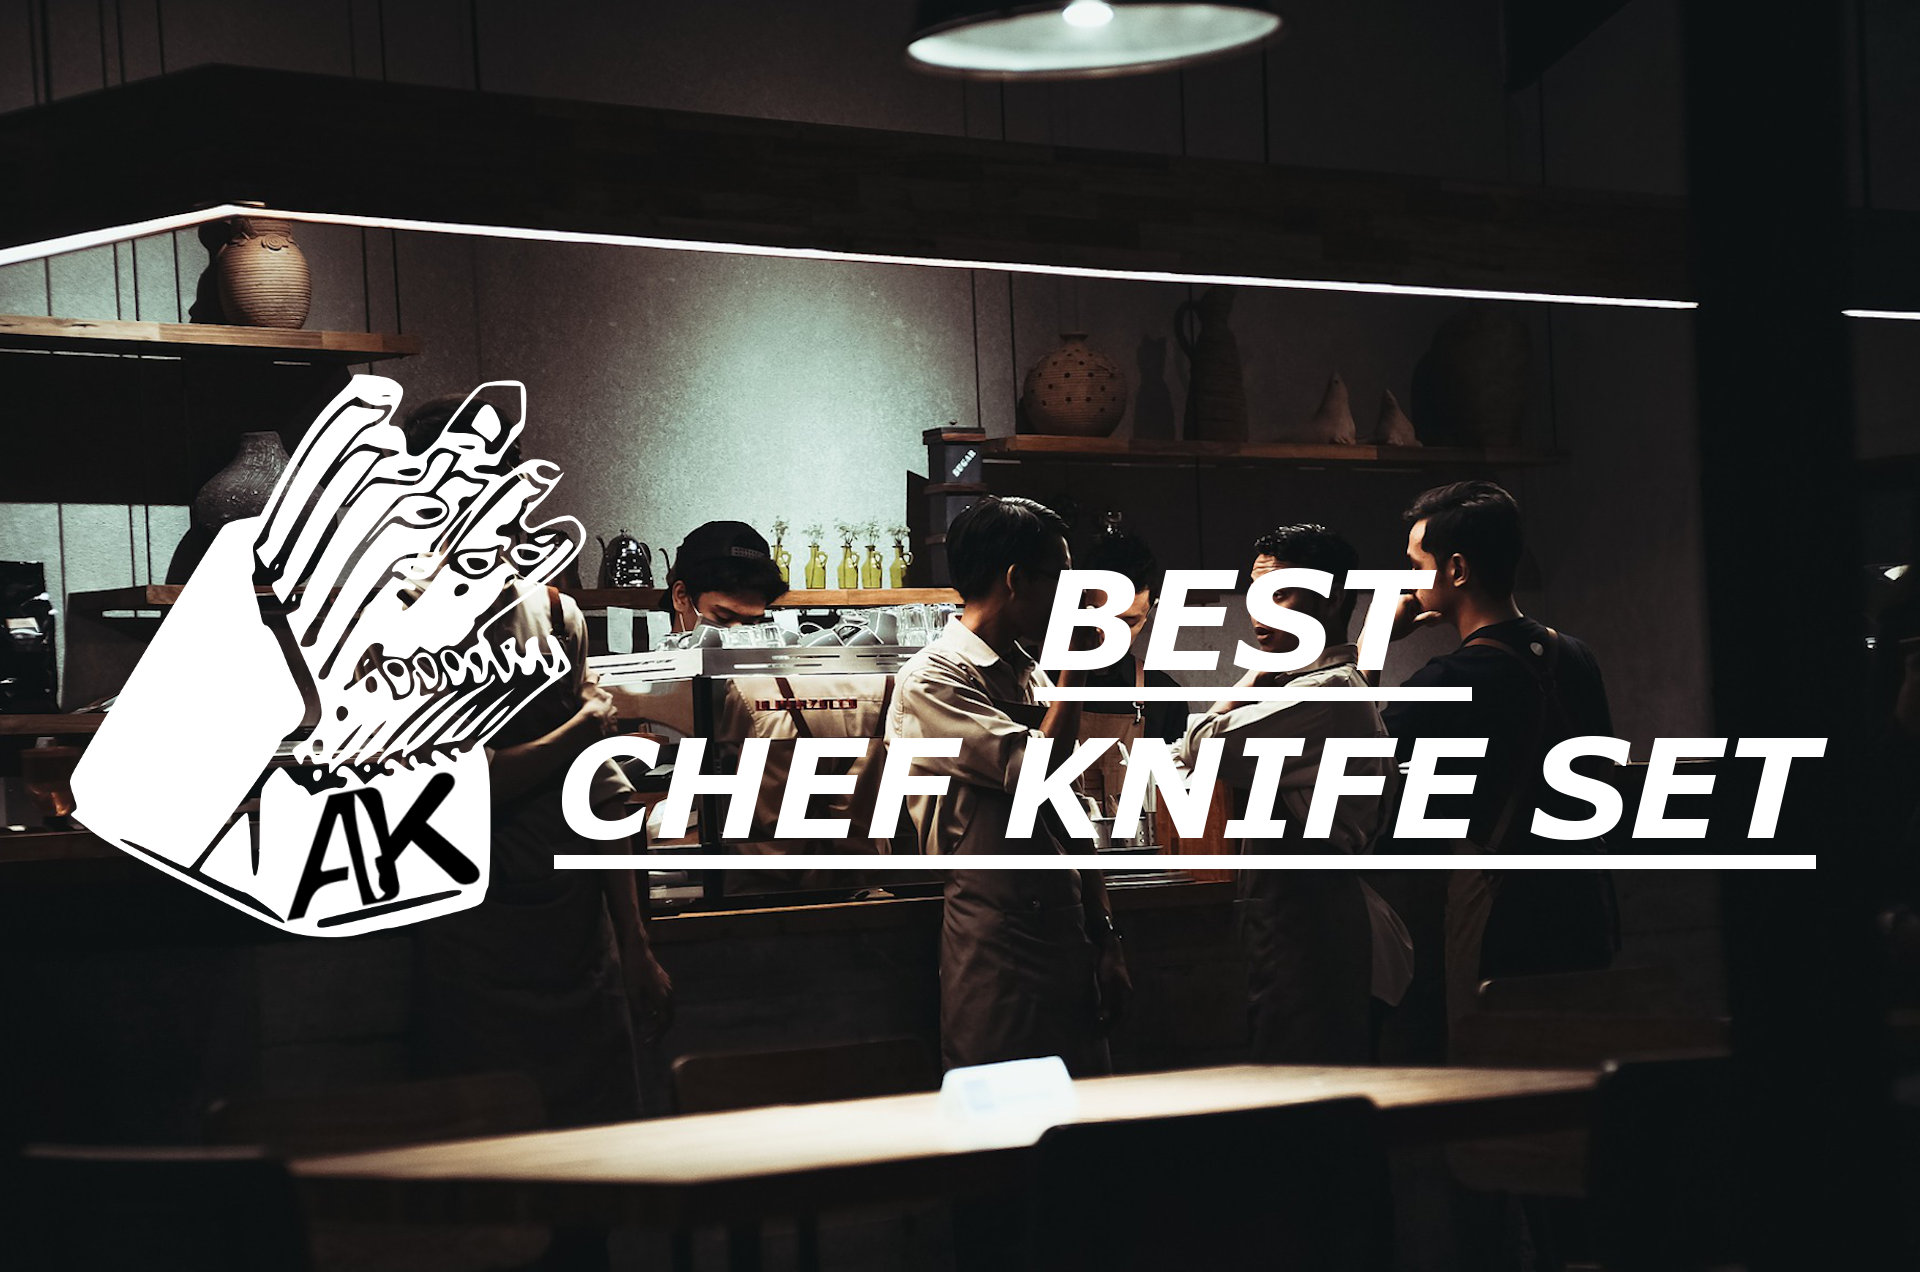 Best Chef Knife Set For Professional Chefs or Home Cooks - All Knives